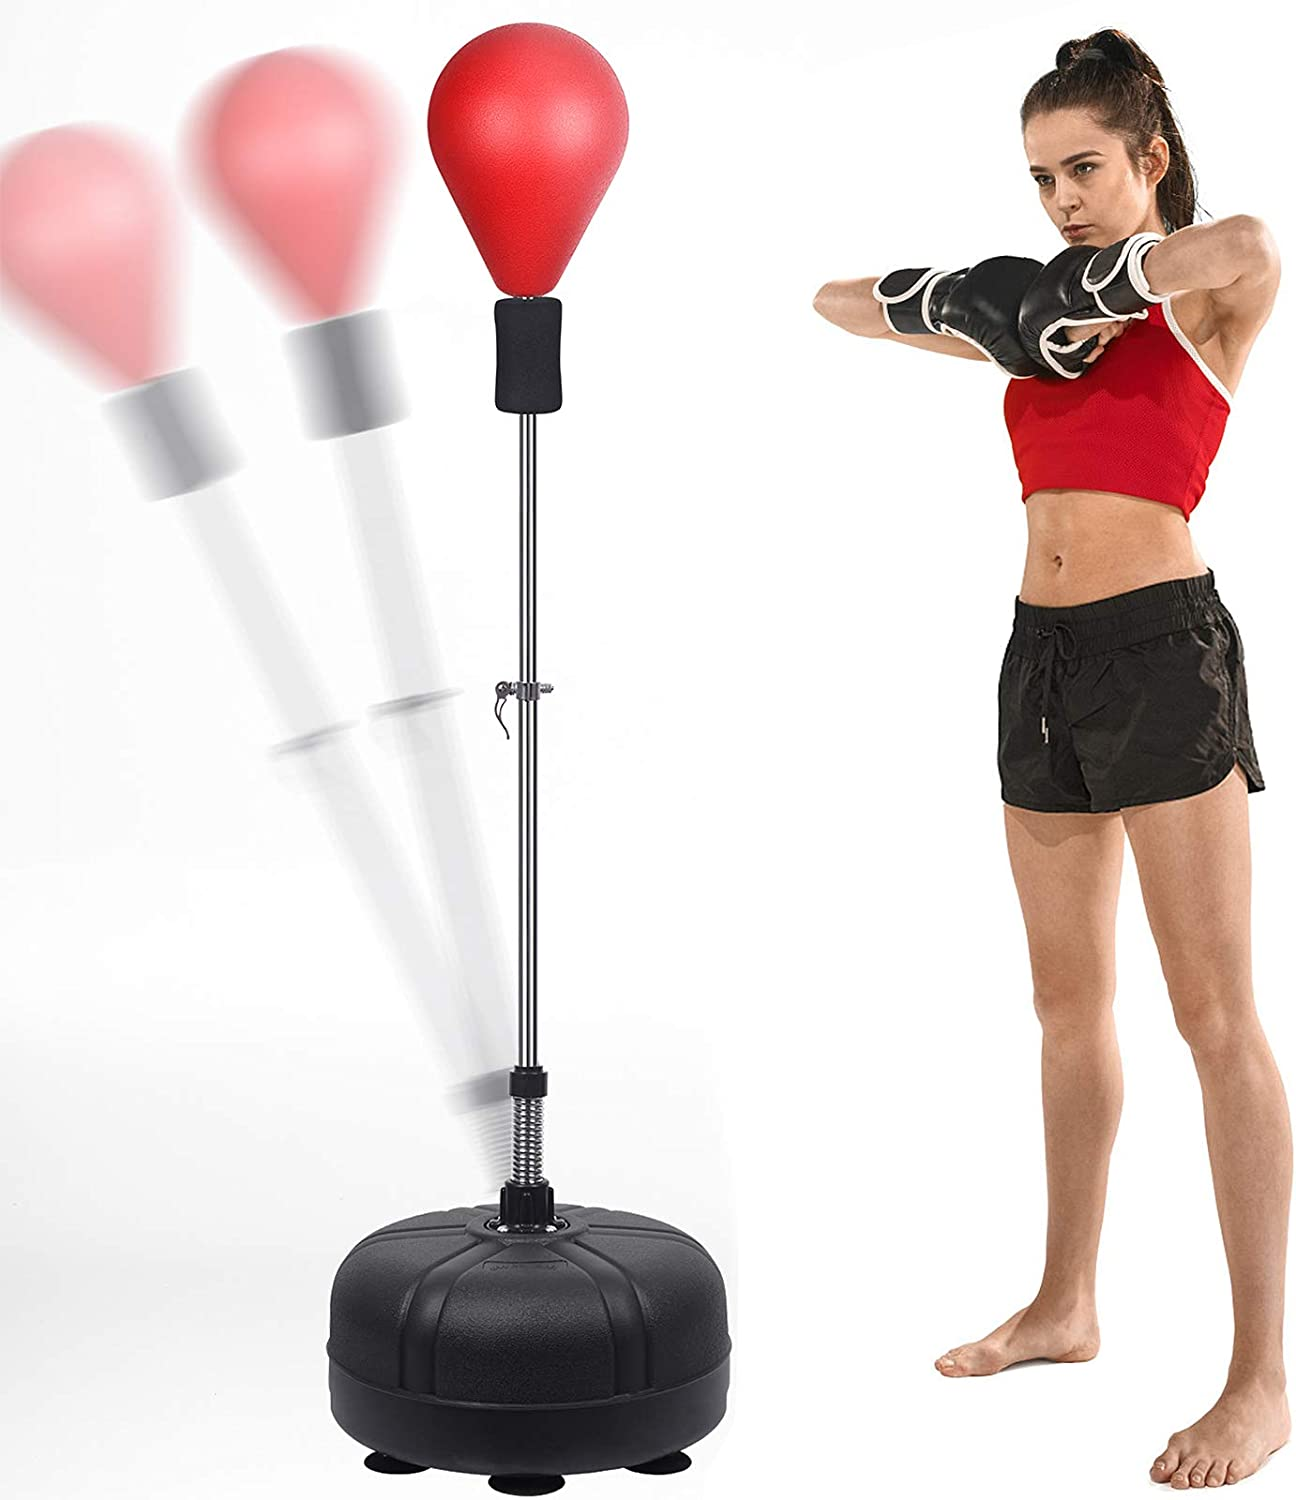 Amazon.com : Mdikawe 53In-62In Adjustable Height Boxing Bag, Adult/Child  Training Boxing Suit, Quick Recovery Speed Ball, Standing Air Pump with  Base, Suitable for Fitness and Decompression. : Sports & Outdoors